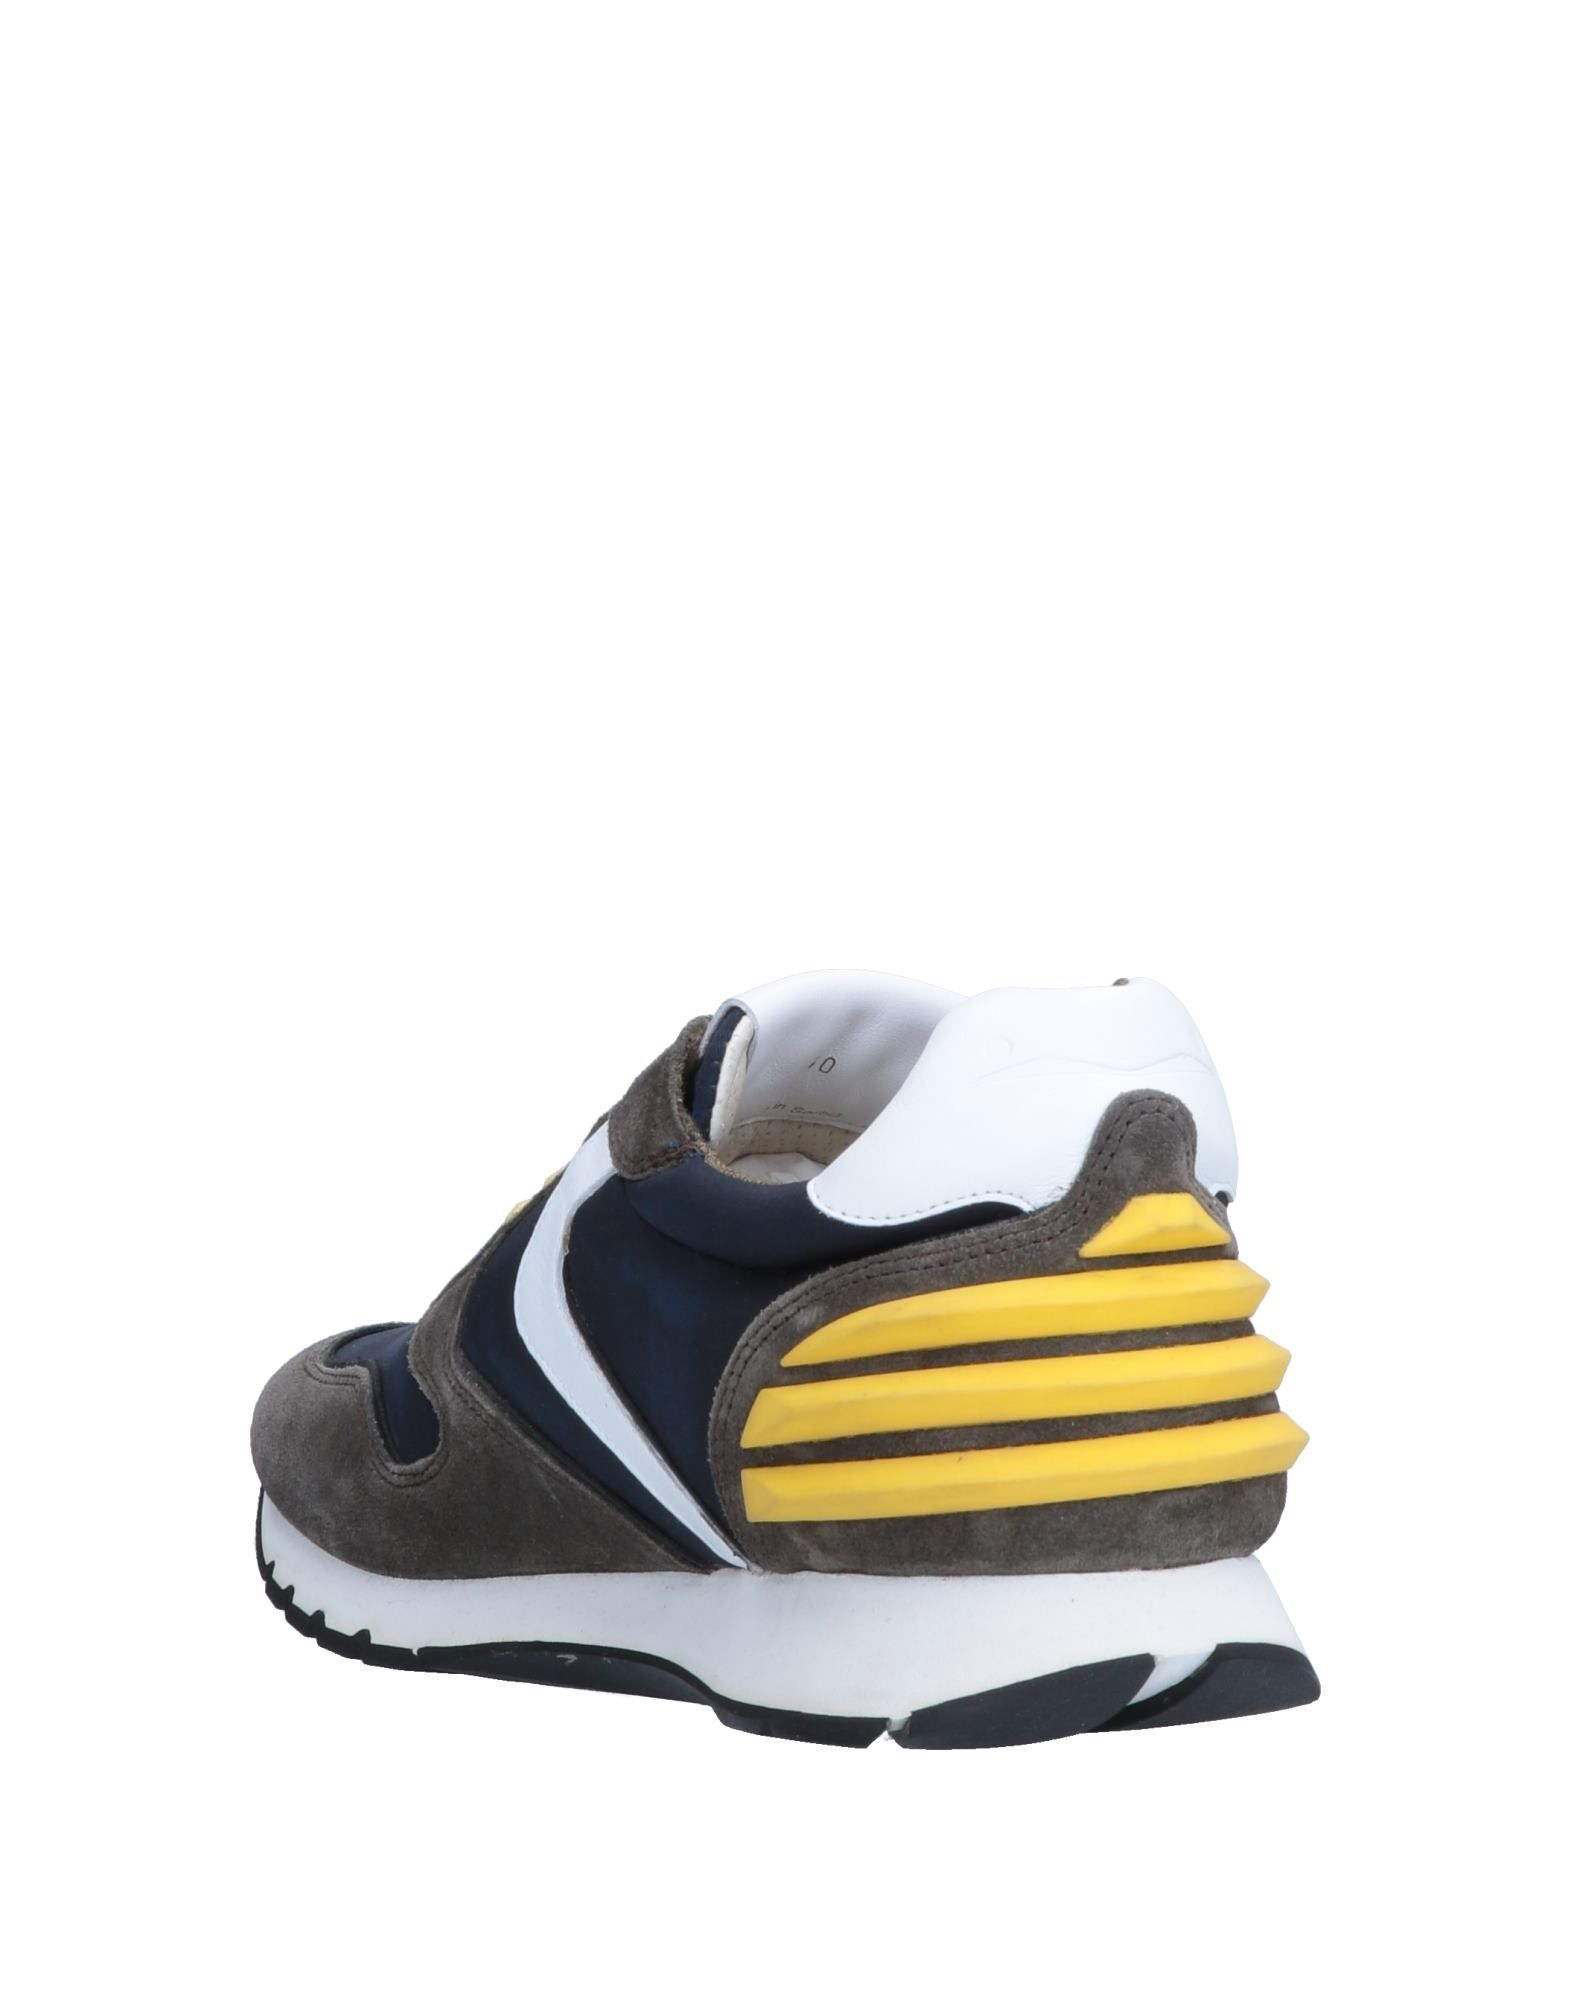 Voile Voile Blanche Sneakers - Men Voile Voile Blanche Sneakers online on  Canada - 11559400JW af6b8f